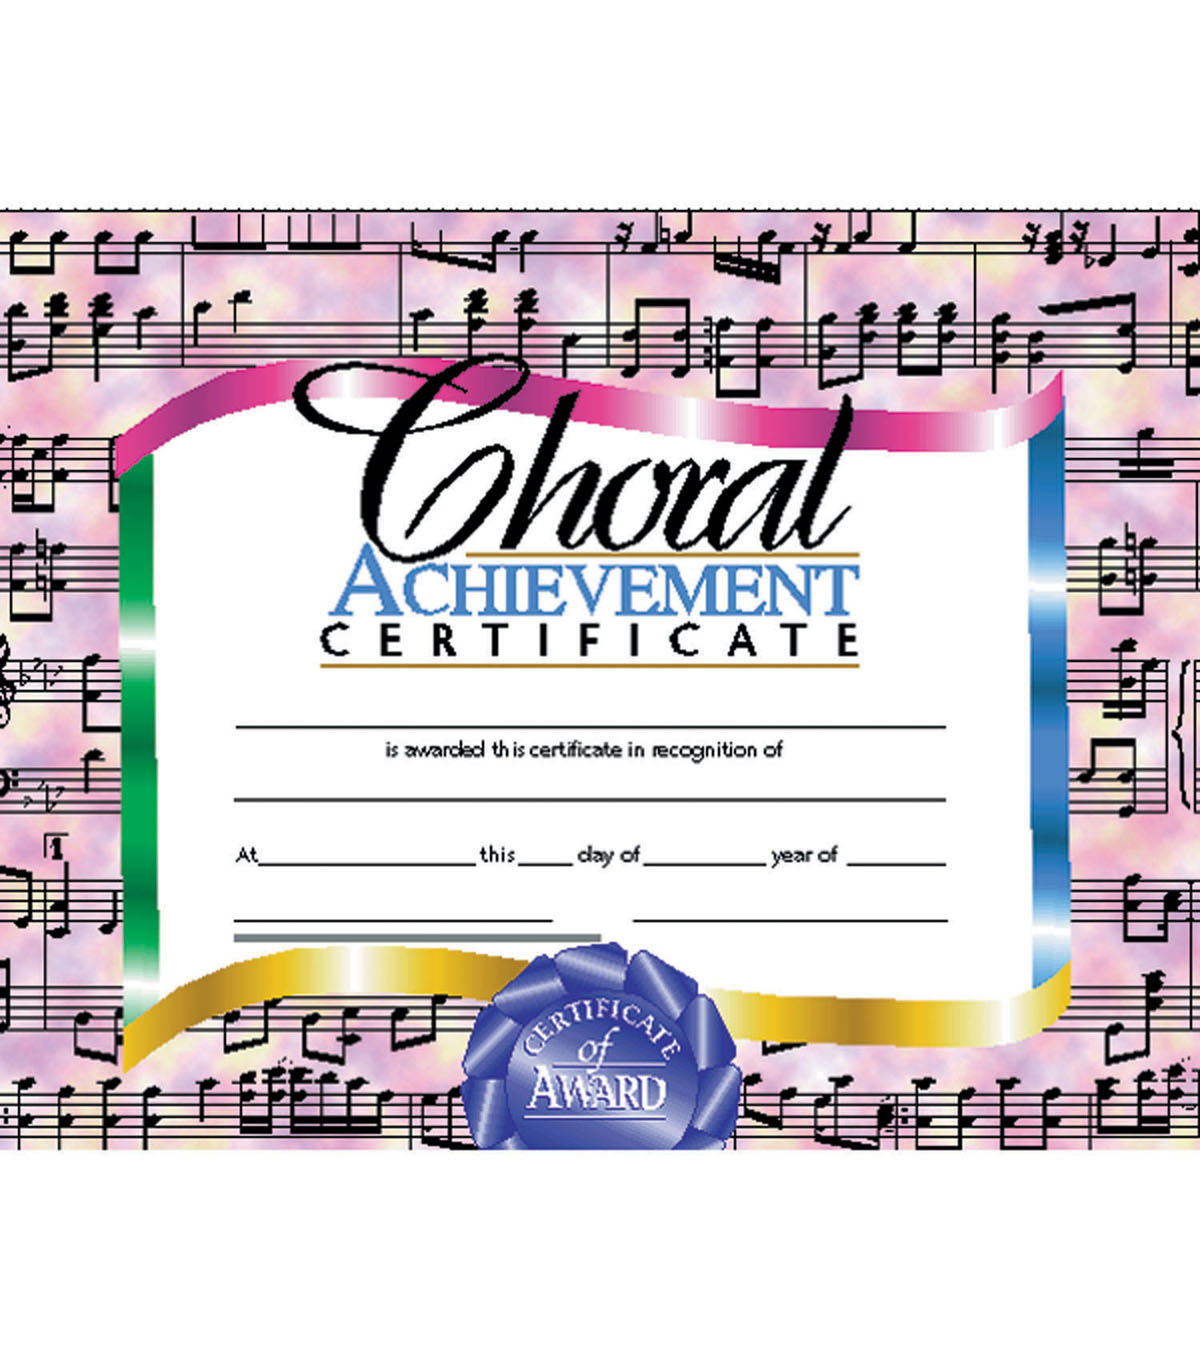 Hayes Choral Achievement Certificate, 30 Per Pack, 6 Packs